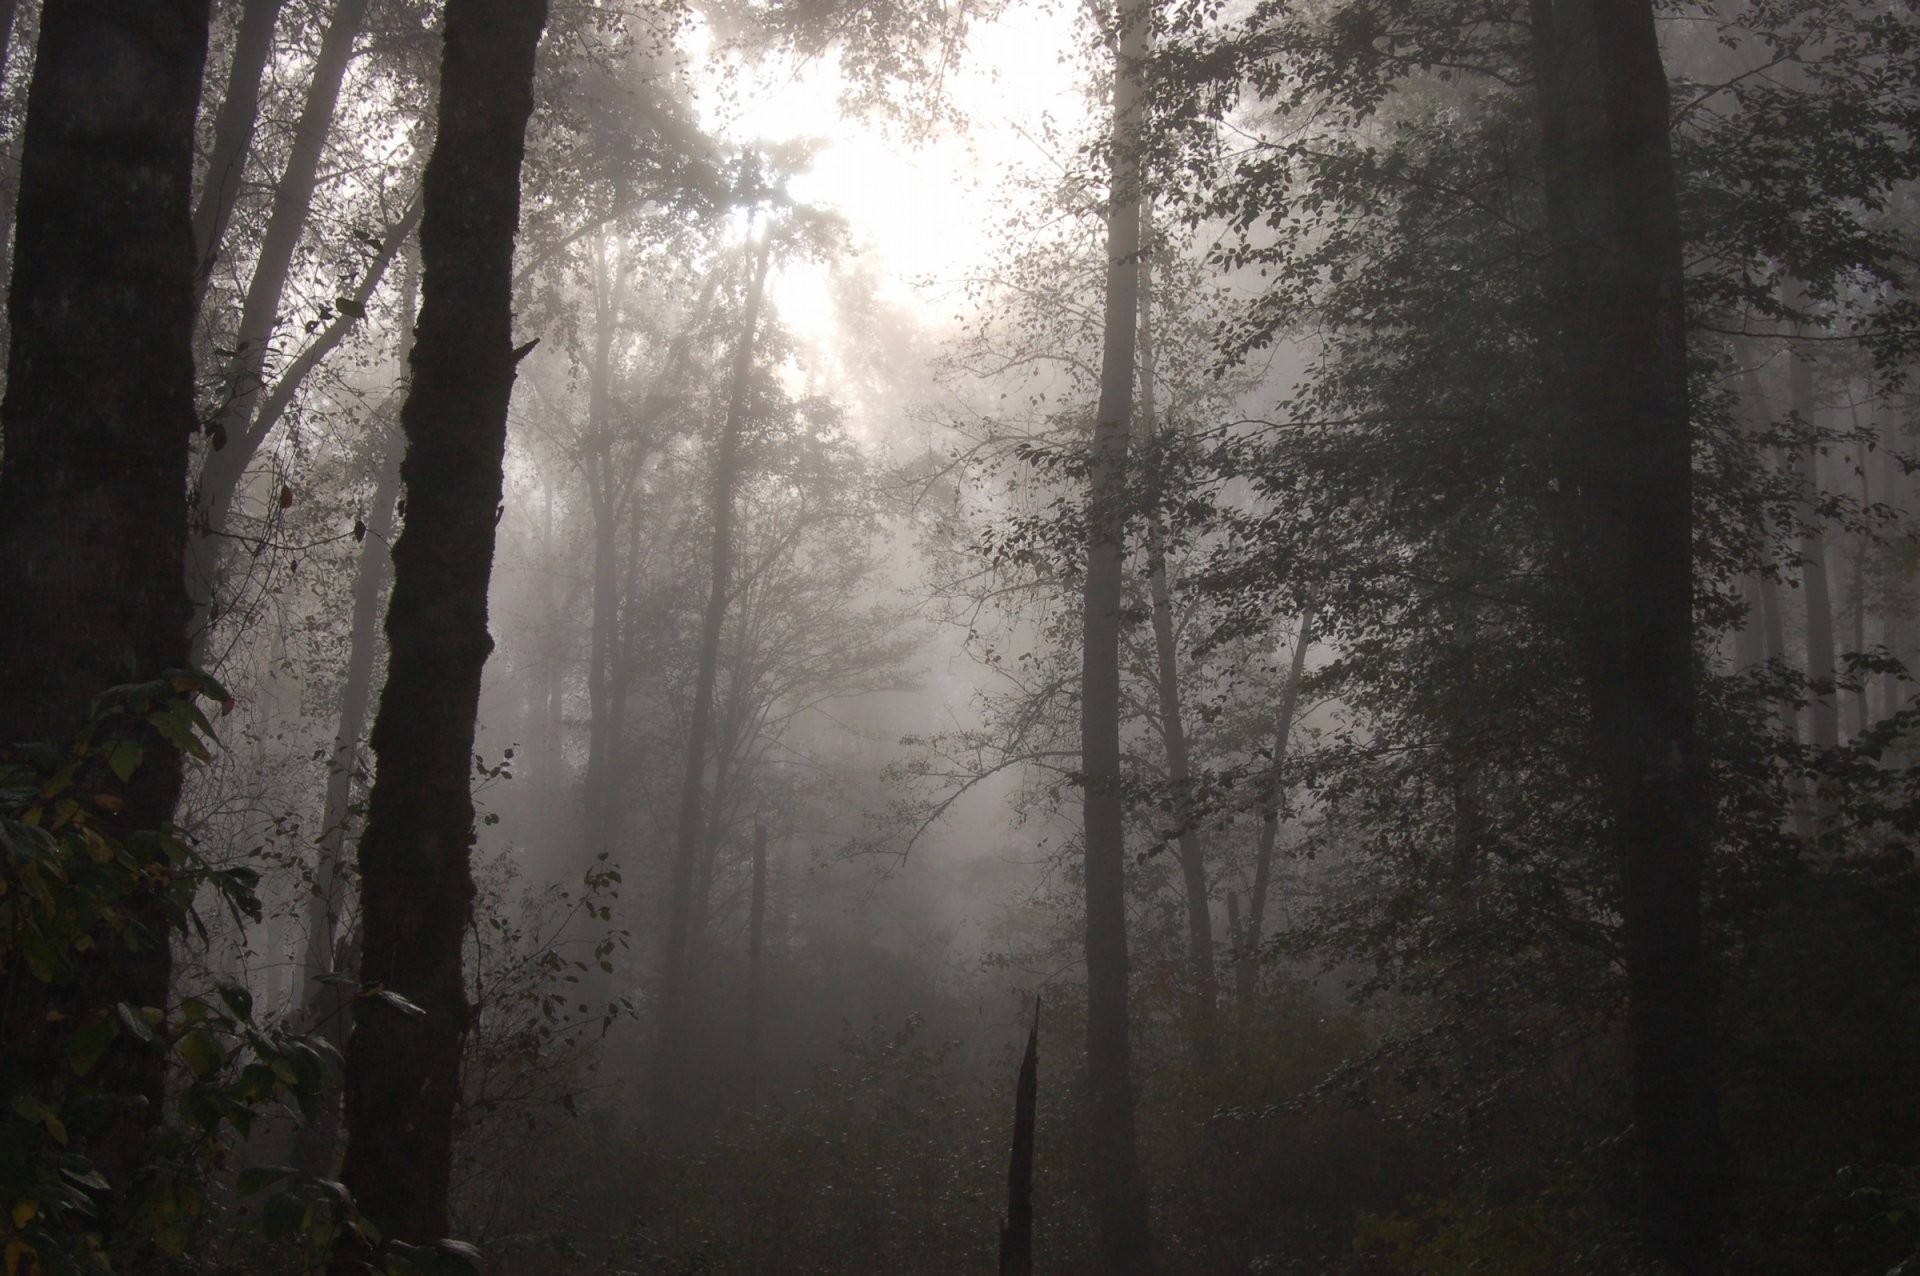 Foggy forest wallpaper – Nature wallpapers – Free wallpapers, Desktop .